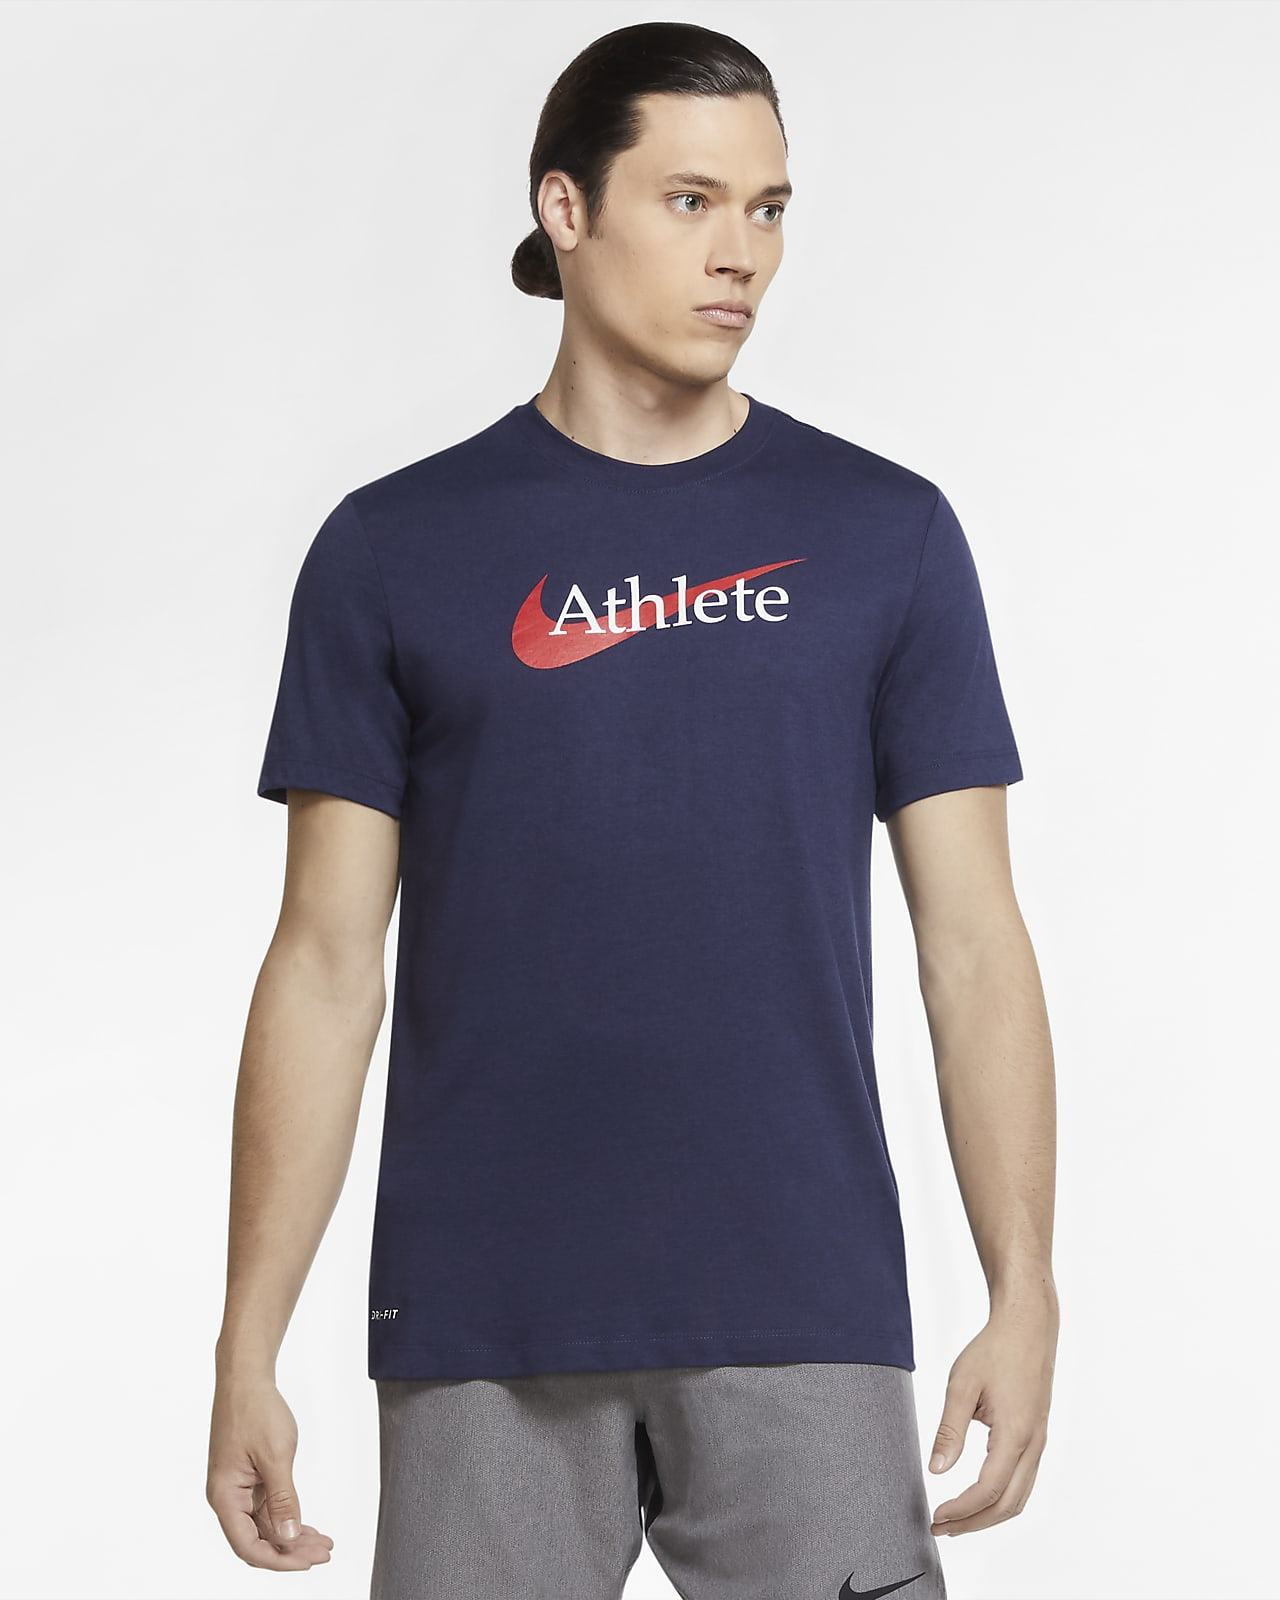 Nike Dri-FIT Trainings-T-Shirt mit Swoosh für Herren